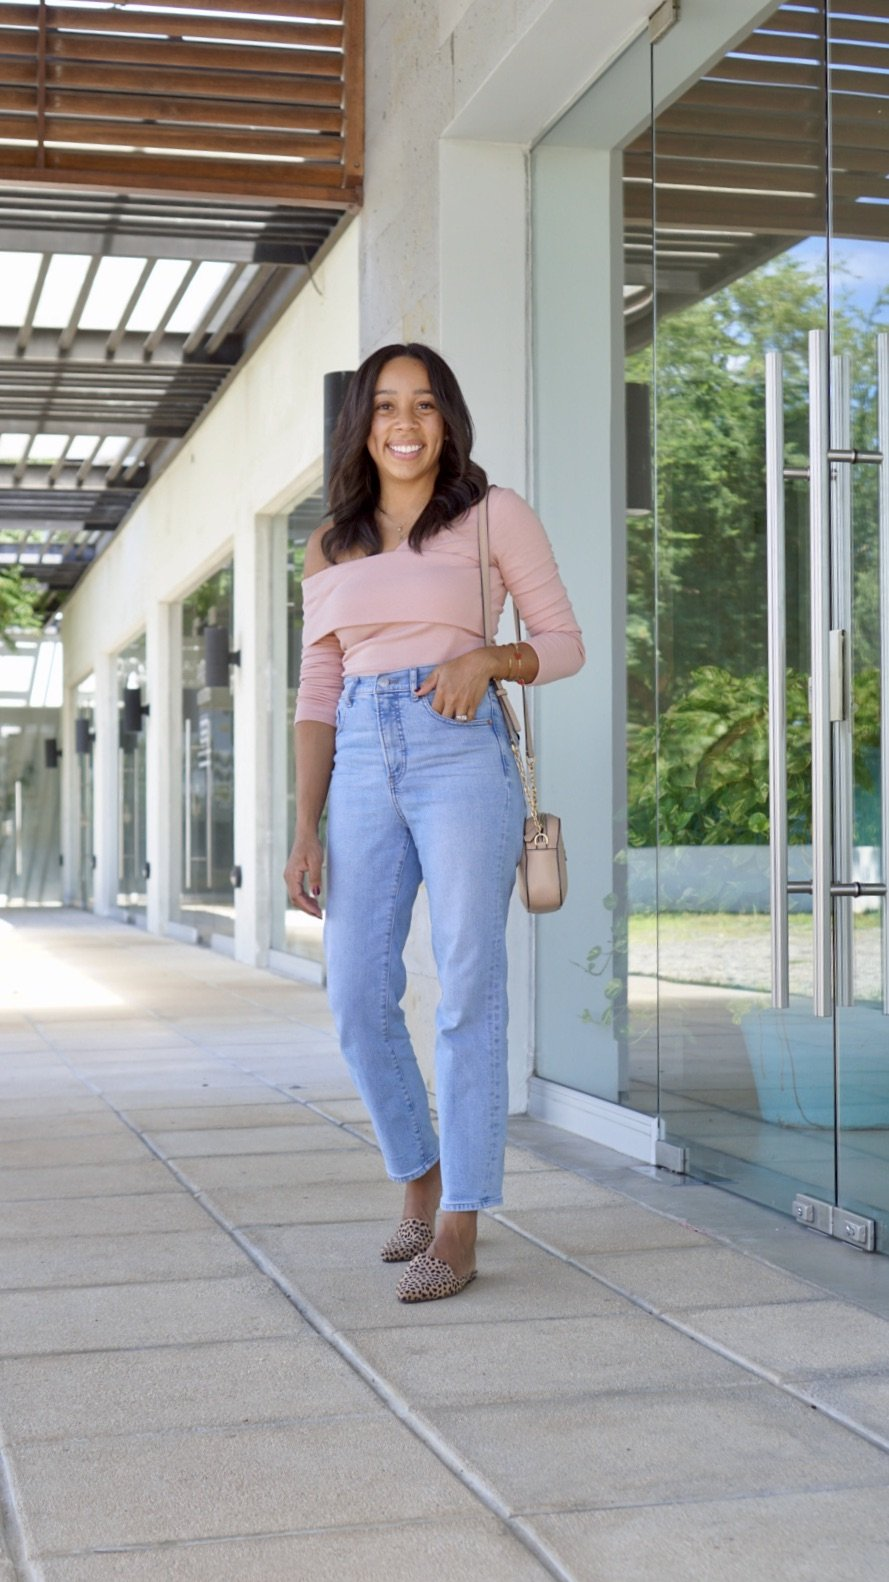 Trendy Thursday LinkUP + Favorite Jeans to Wear this Fall